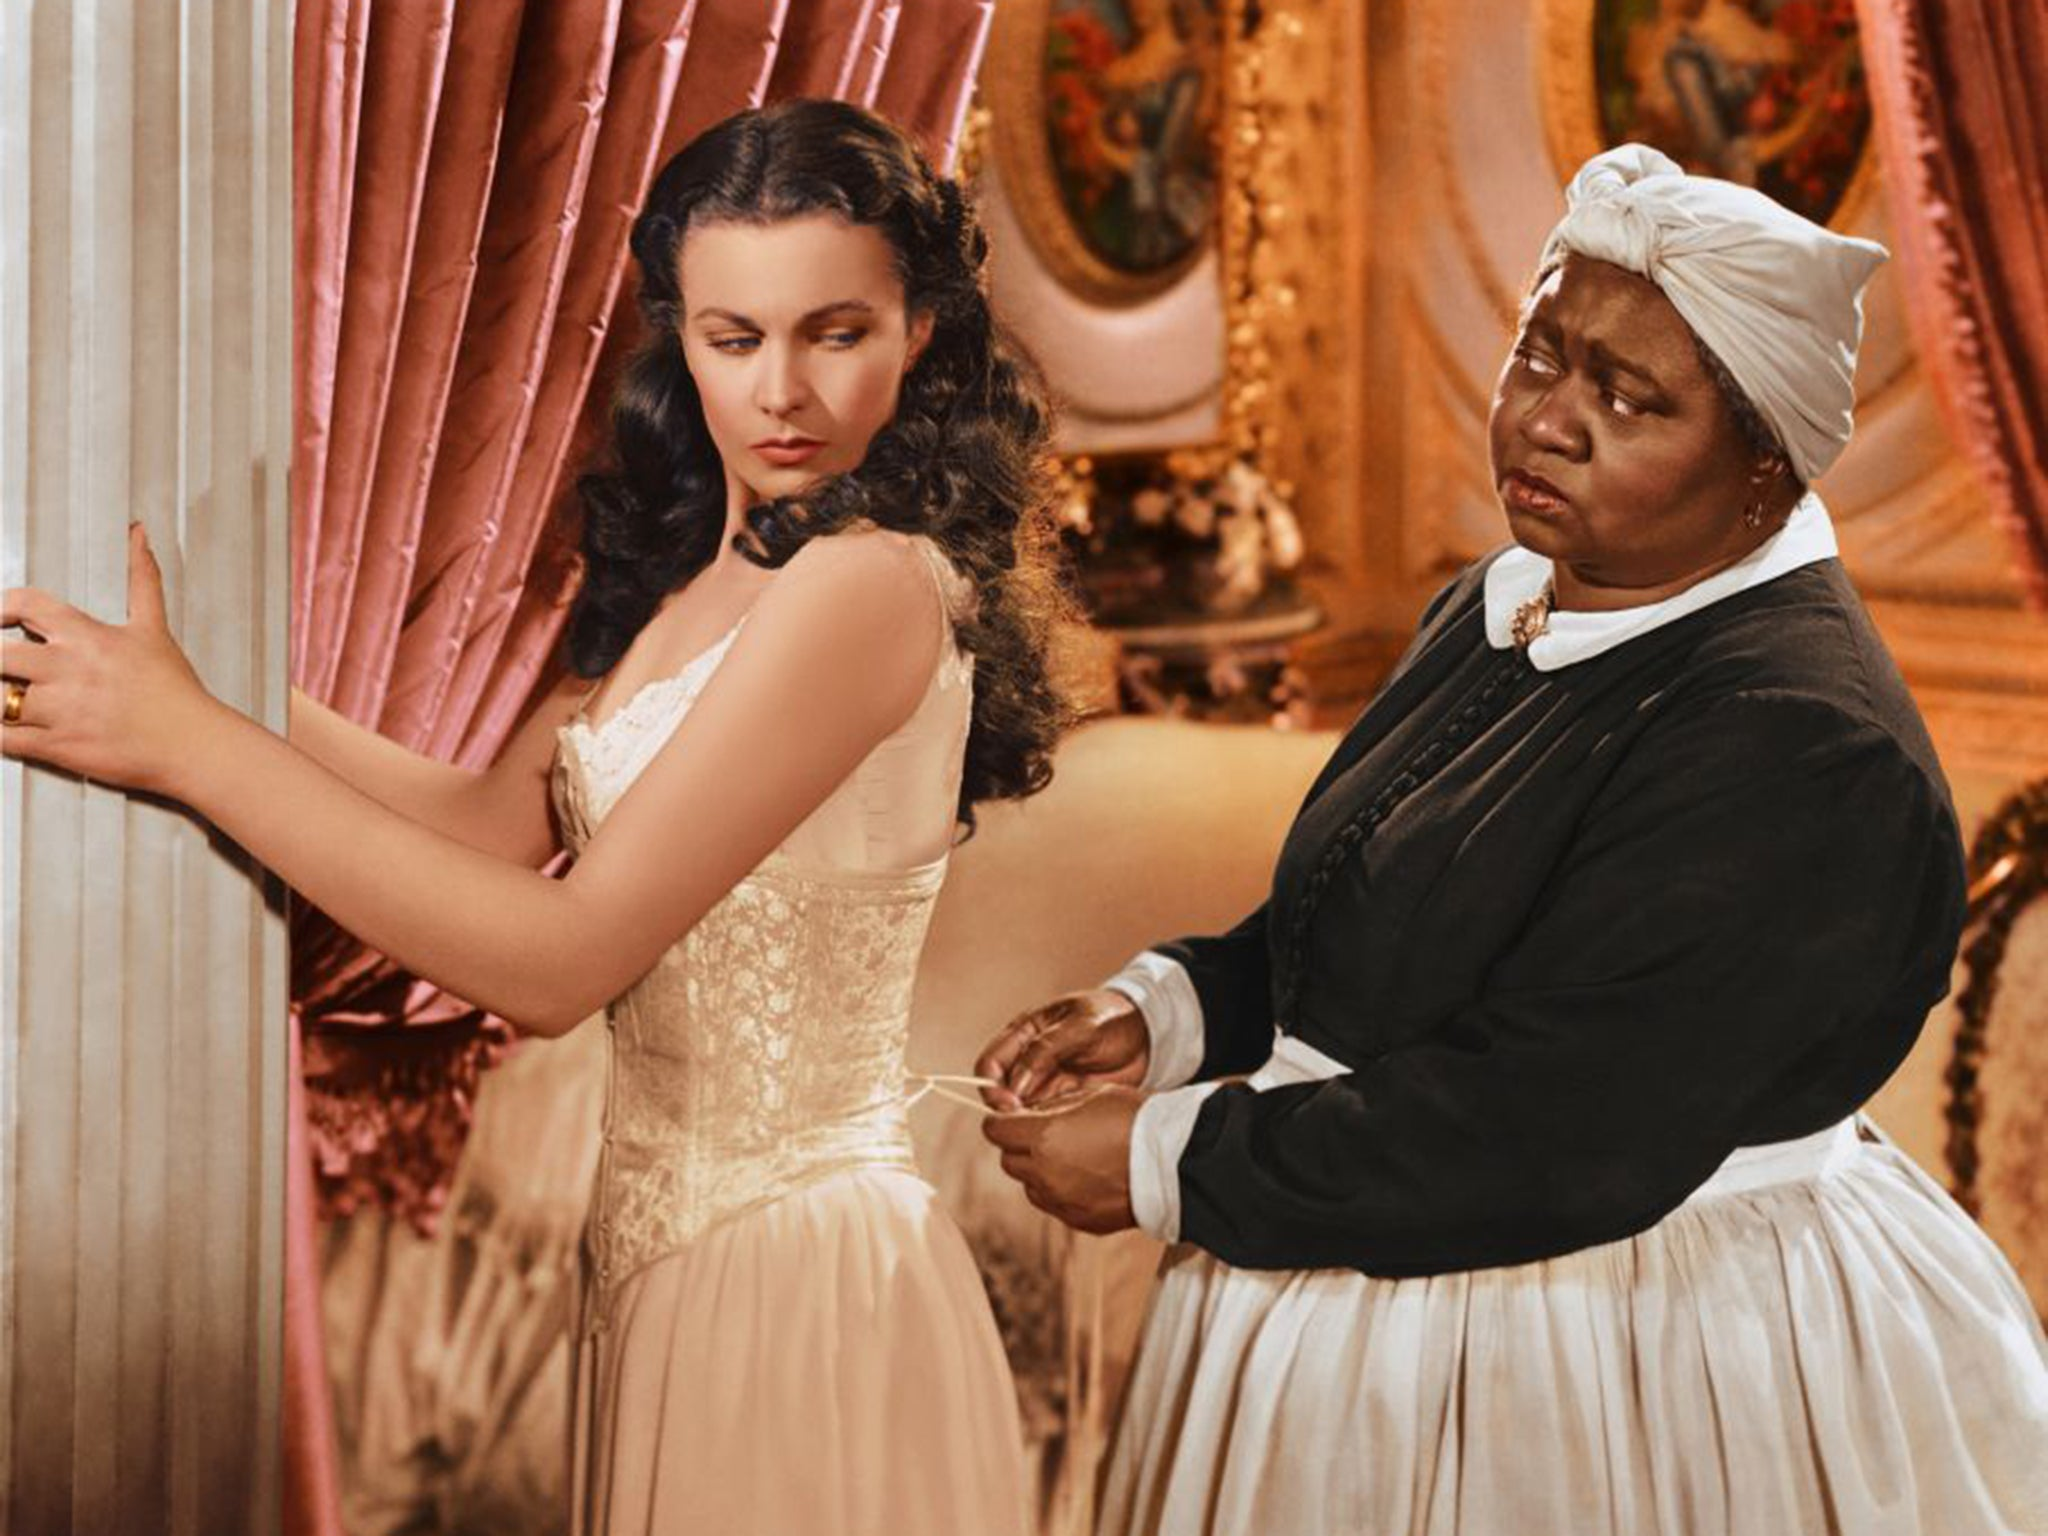 Gone With The Wind Is An Undeniably Racist Artefact Says